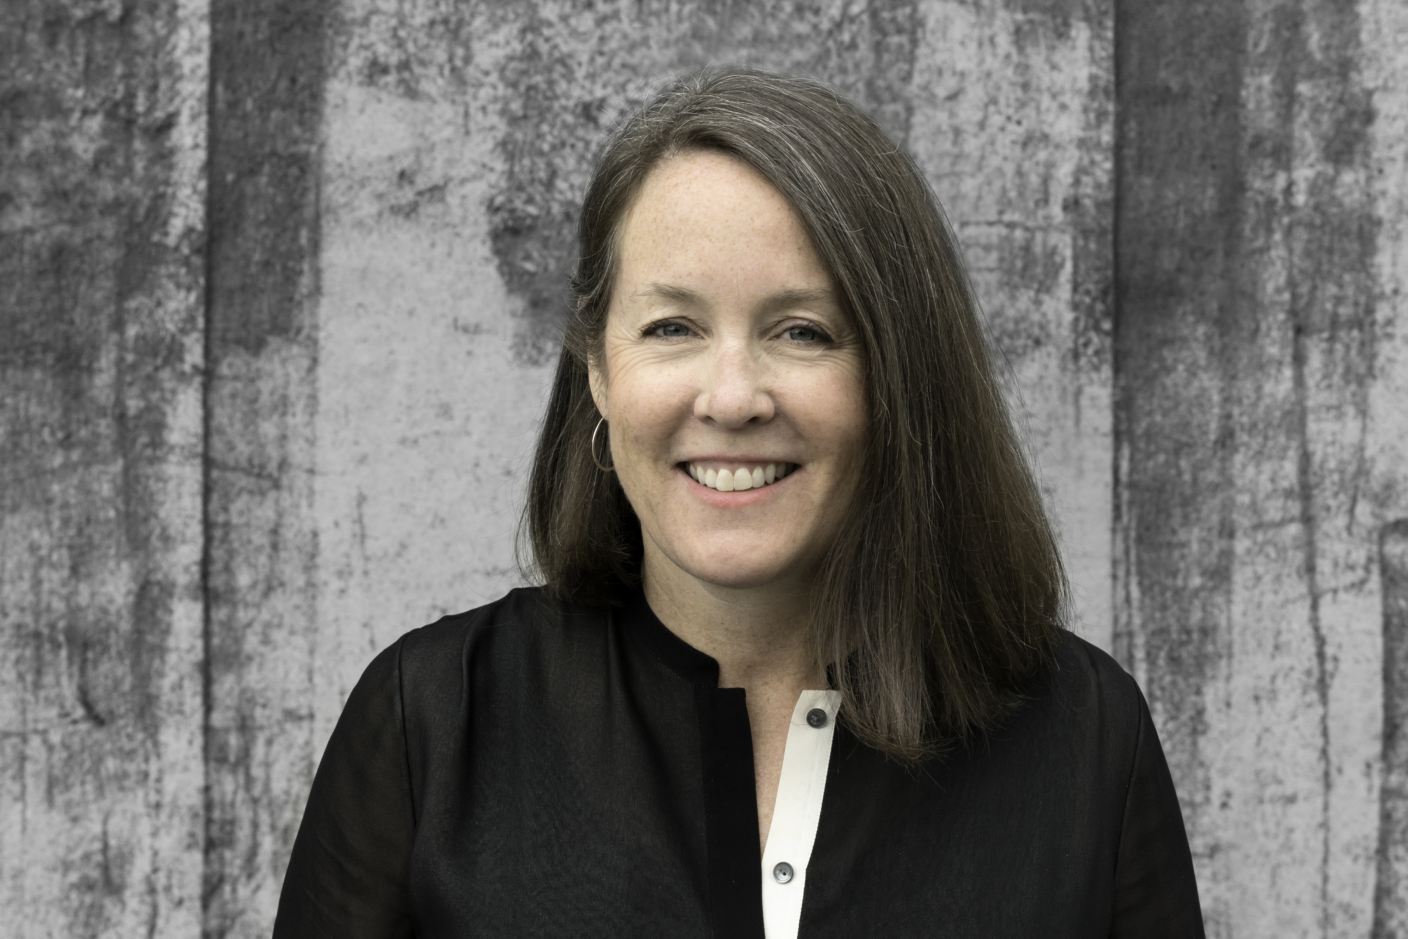 Smiling photo of woman with dark-with-gray hair parted on her right-hand side, wearing a black shirt with white lapel in front of gray, abstracted background